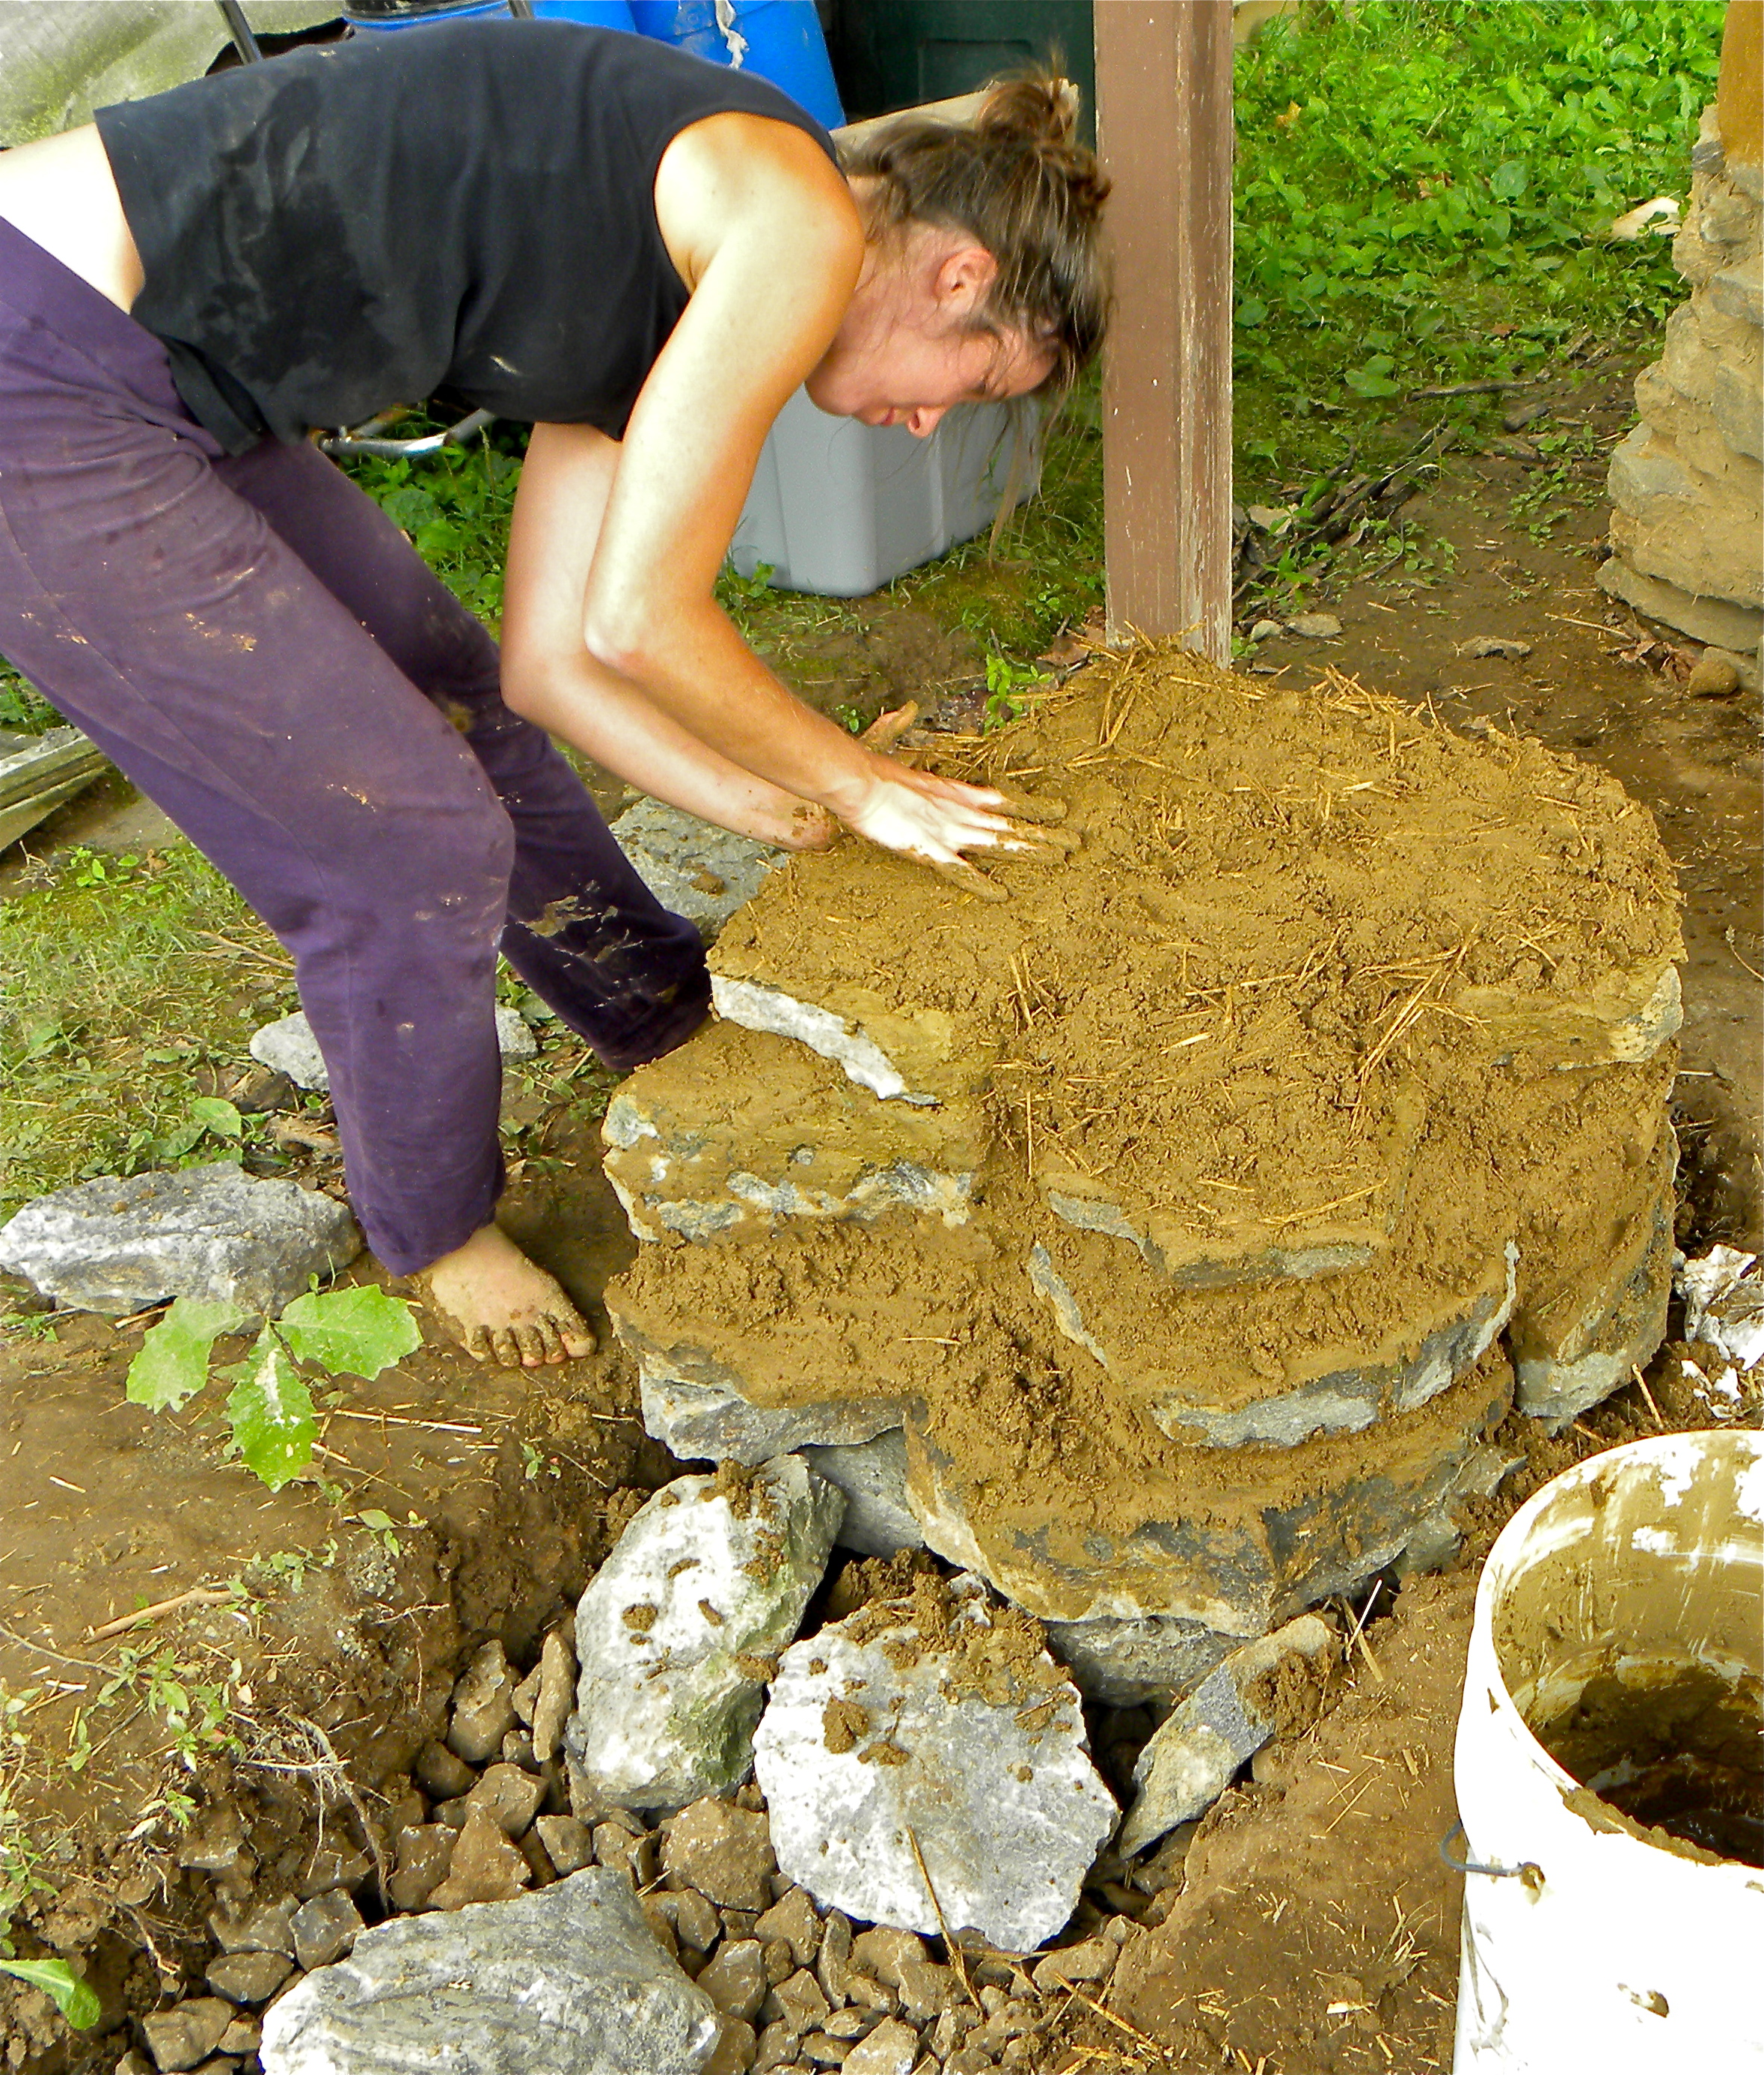 Extending The Cob Oven Social Space An Ongoing Natural Building Rocket Stove Diagram Eva Capping Foundation With